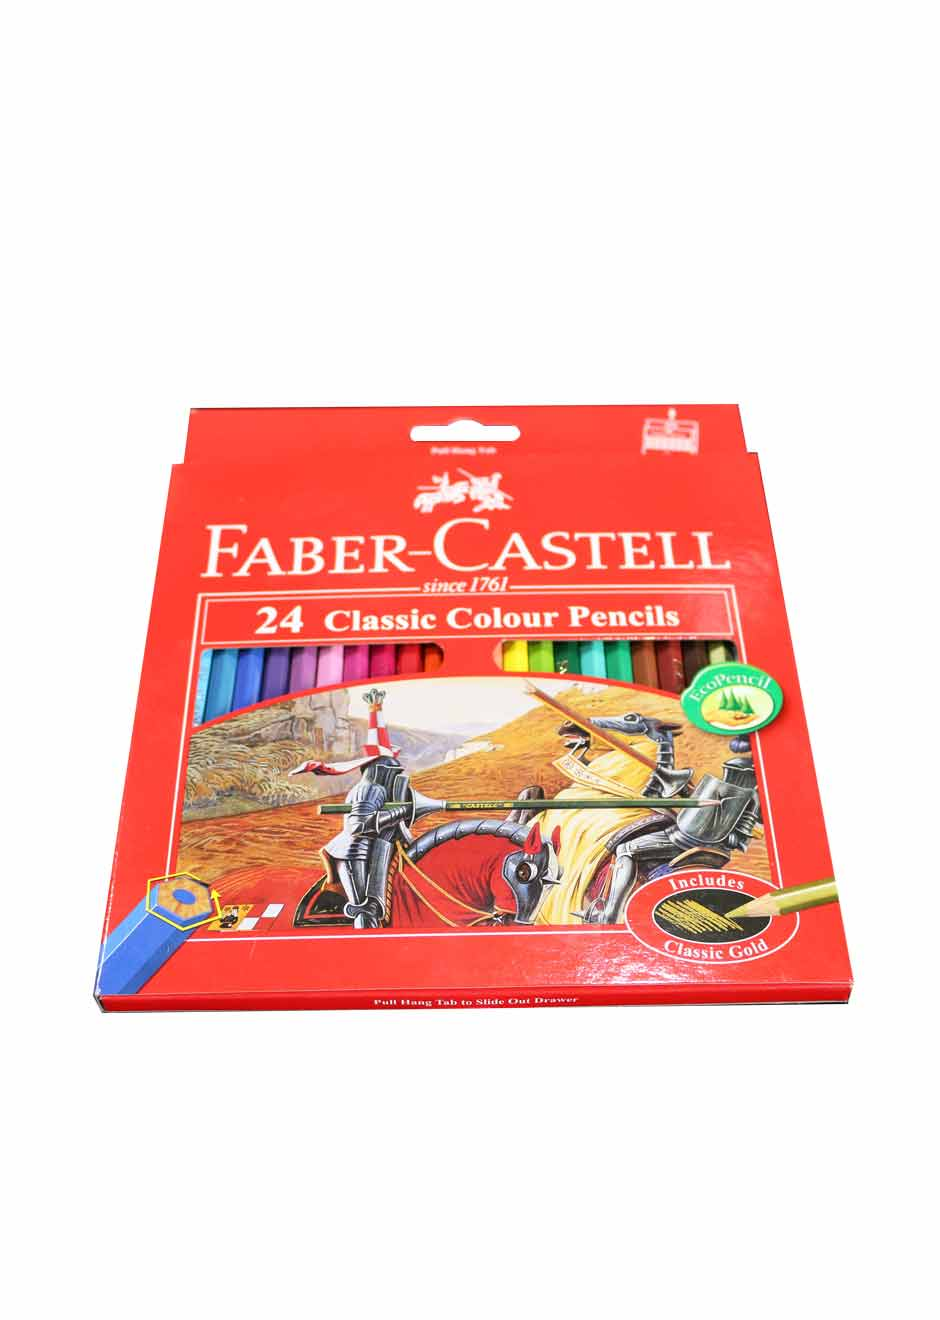 FABER CASTELL CLASSIC COLOR PENCIL SET - Toko Prapatan